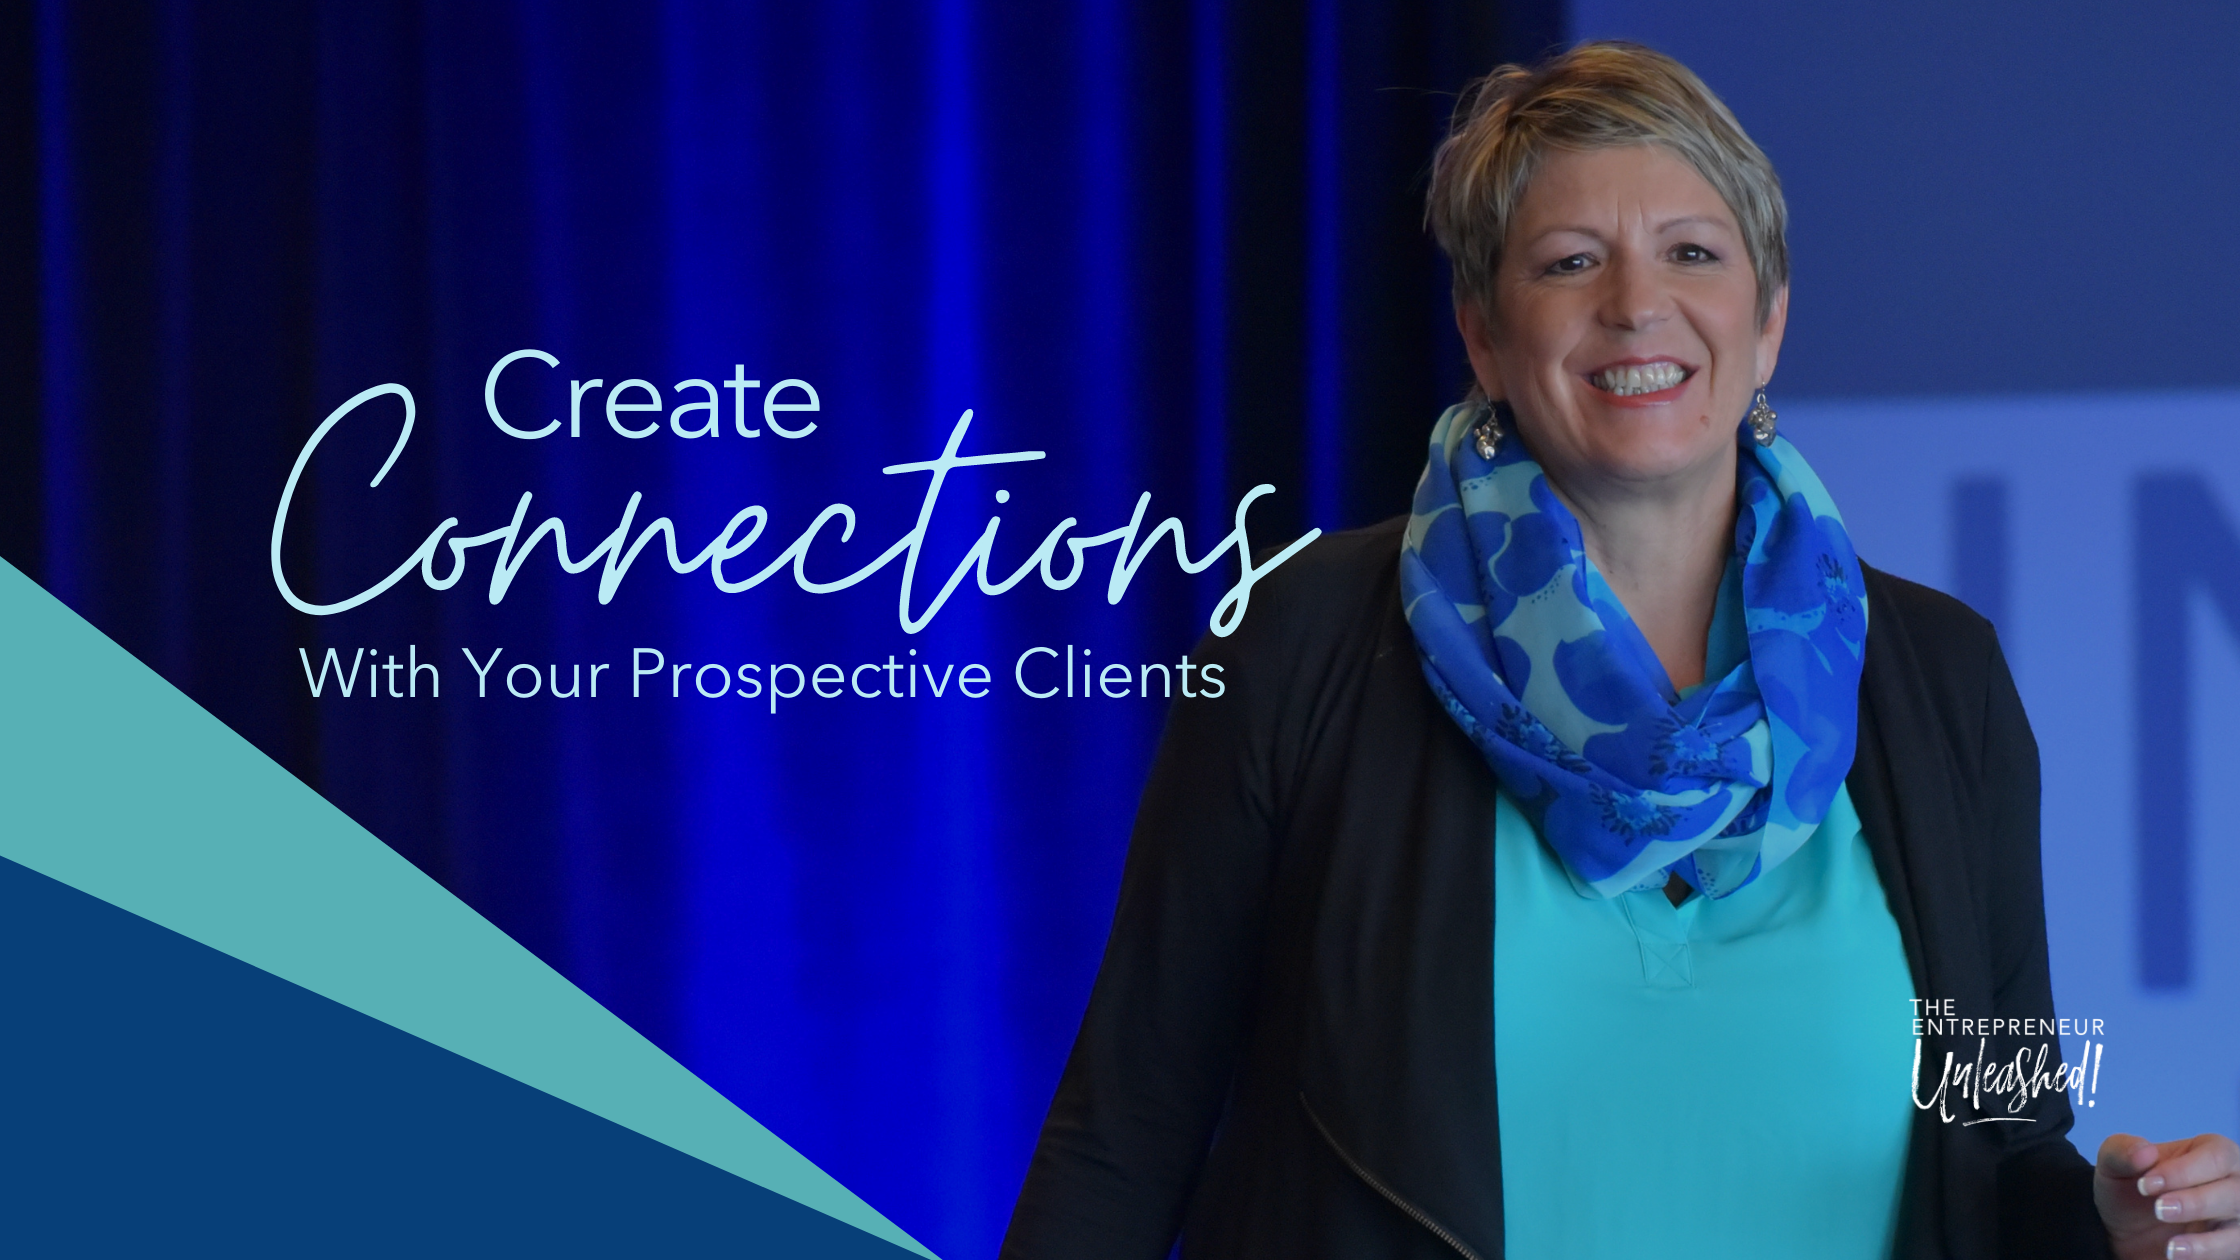 Create Connections with Your Prospect Clients - Patti Keating